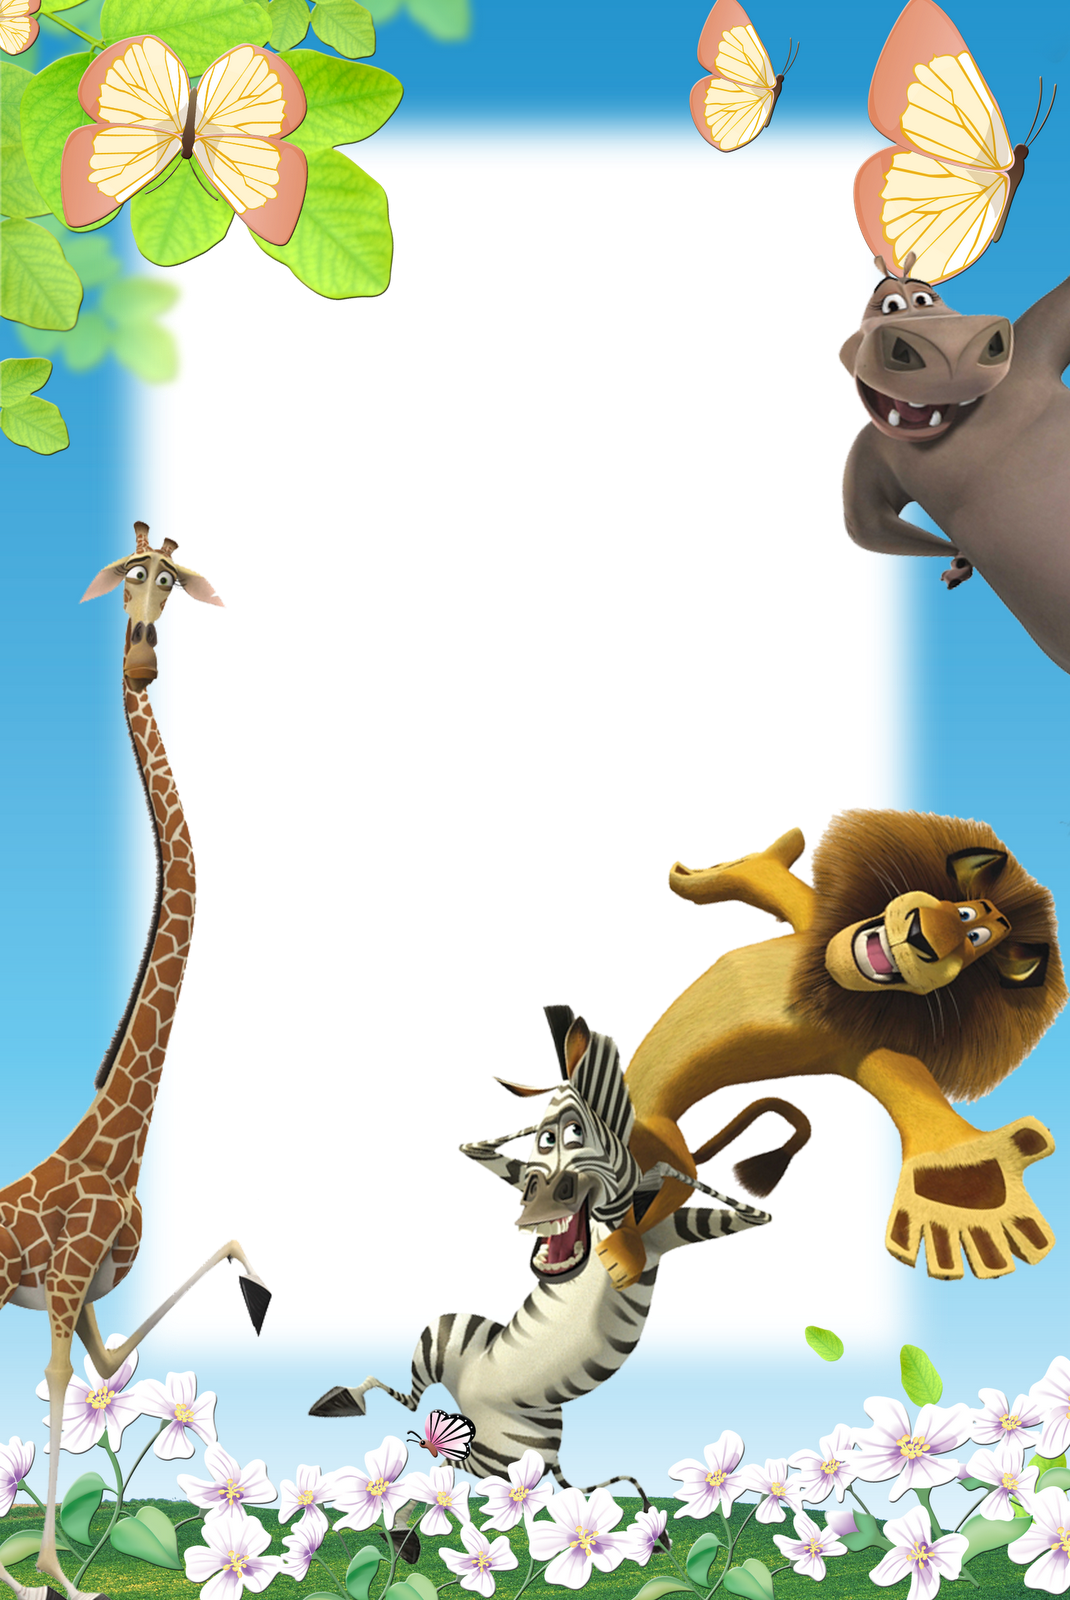 Frames png infantil er. Jungle clipart nature frame